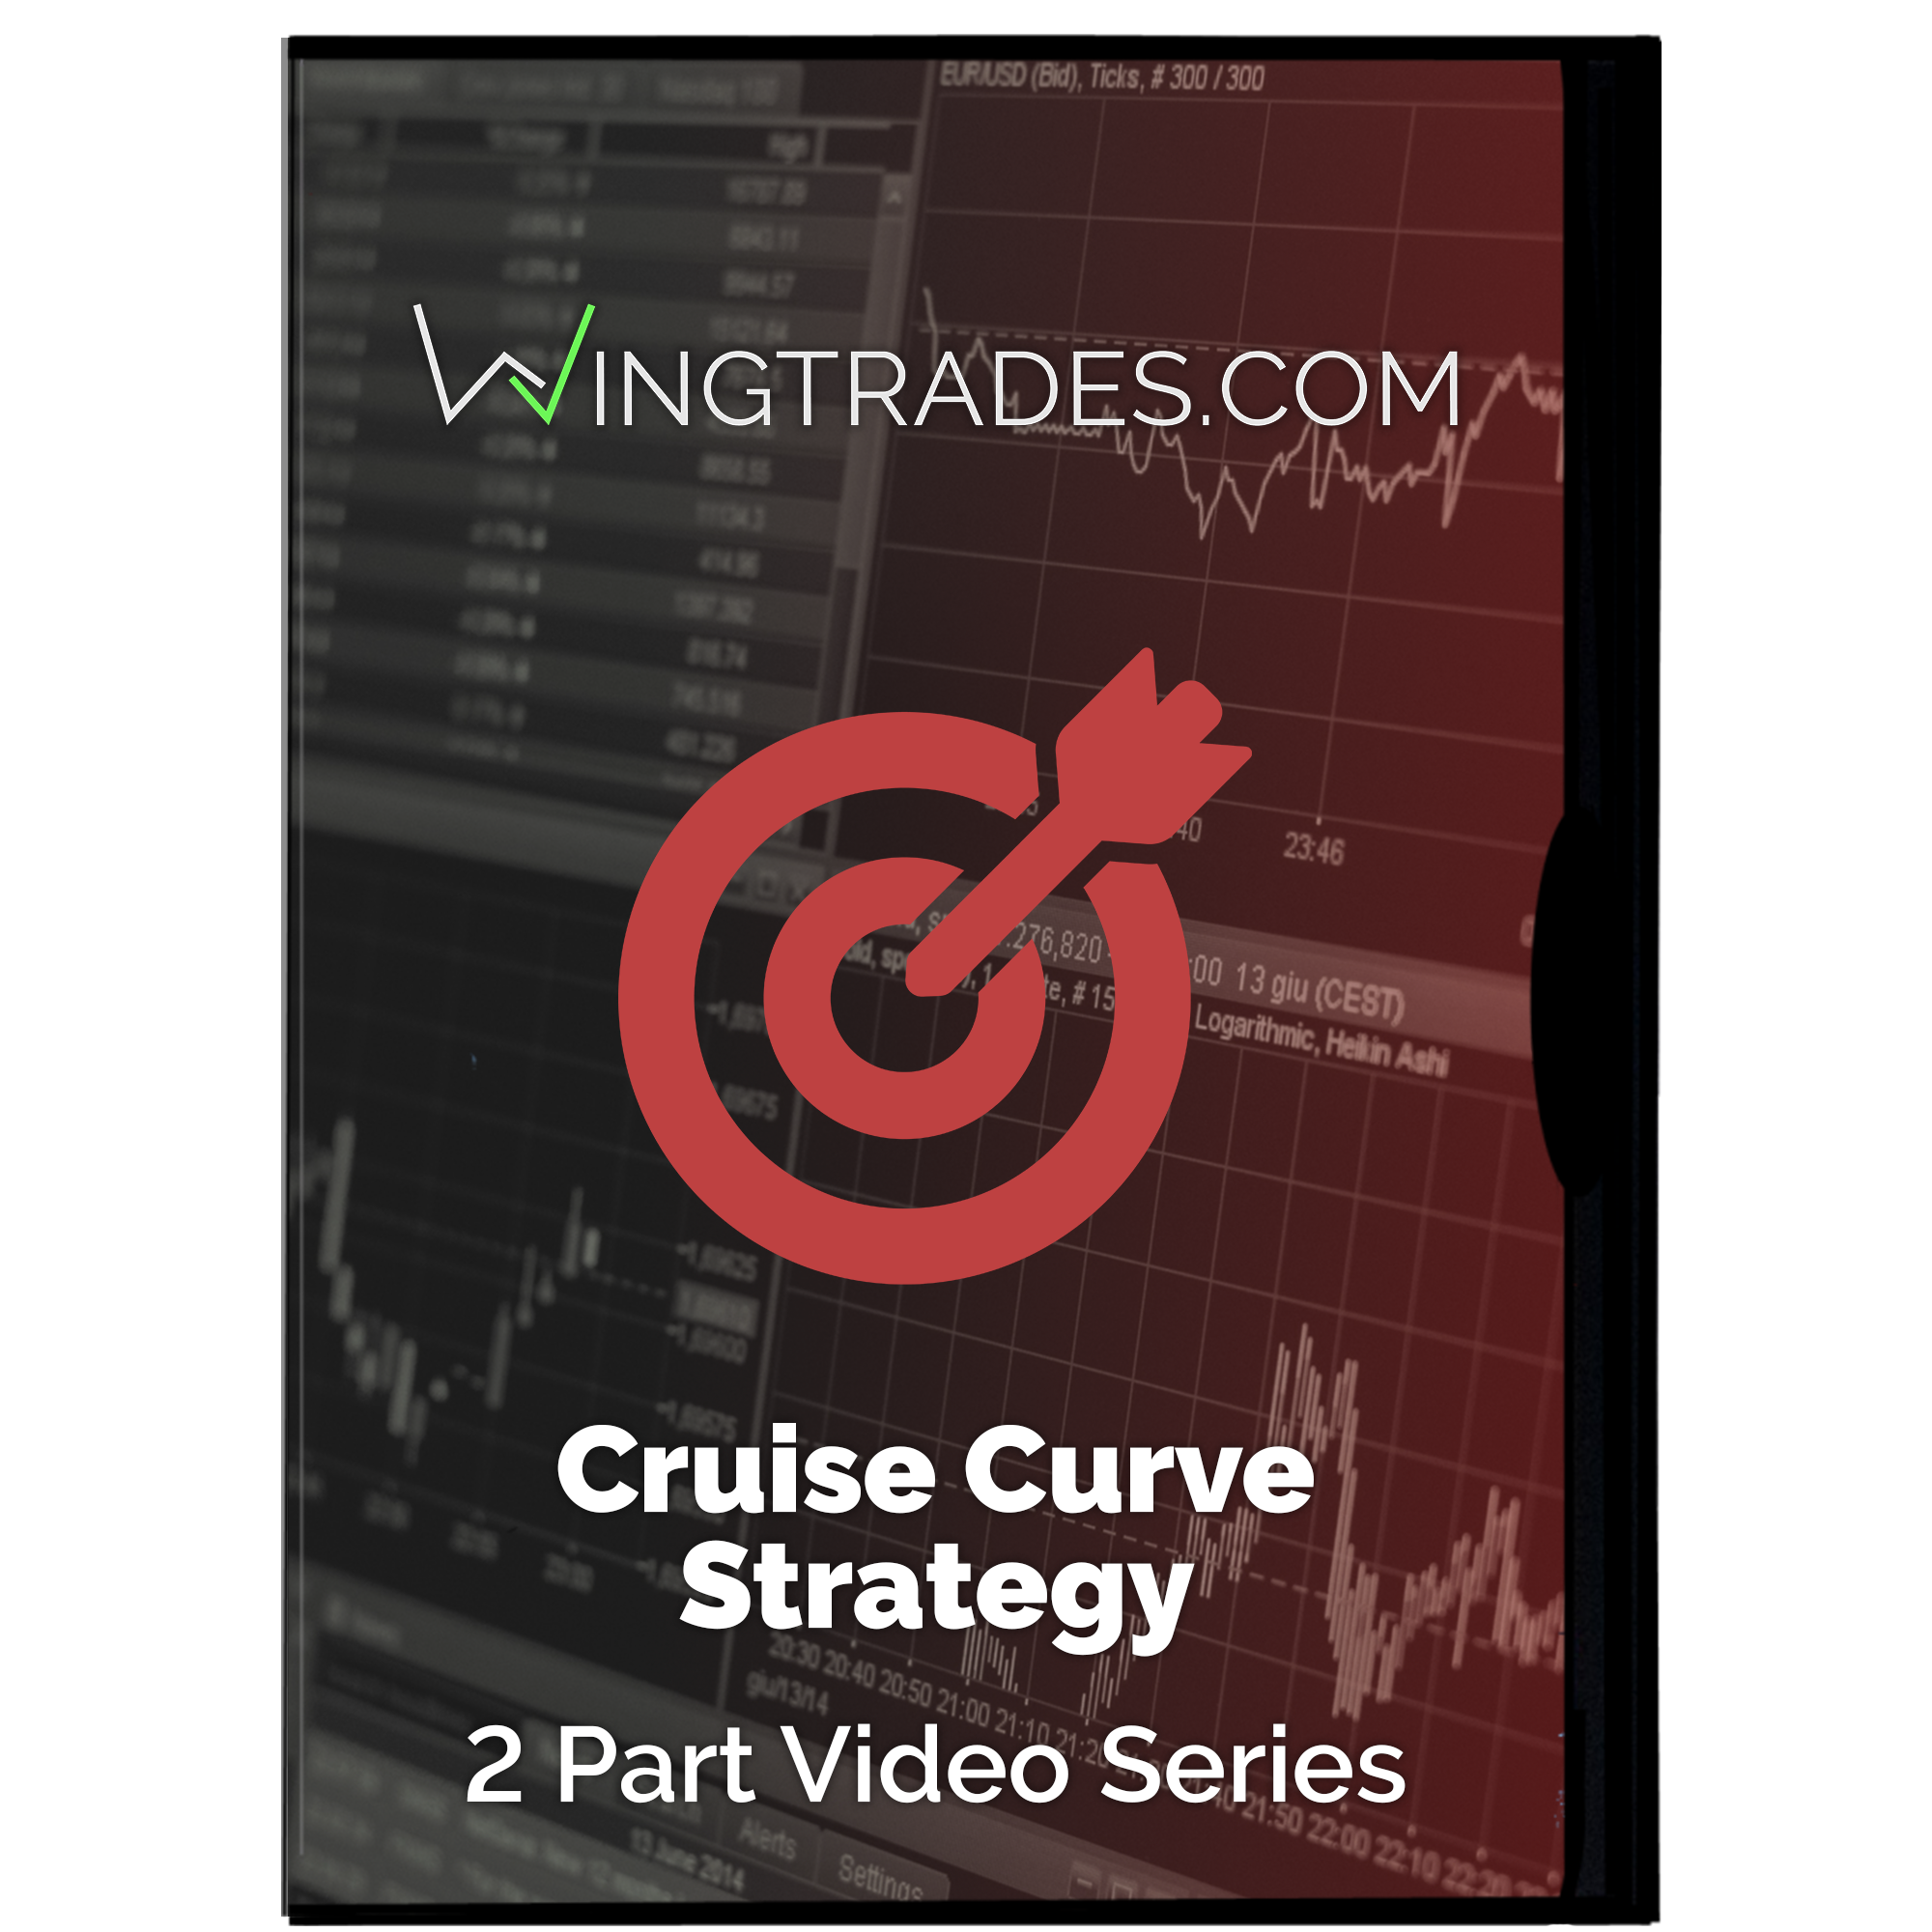 Cruise Curve - Instagram.png